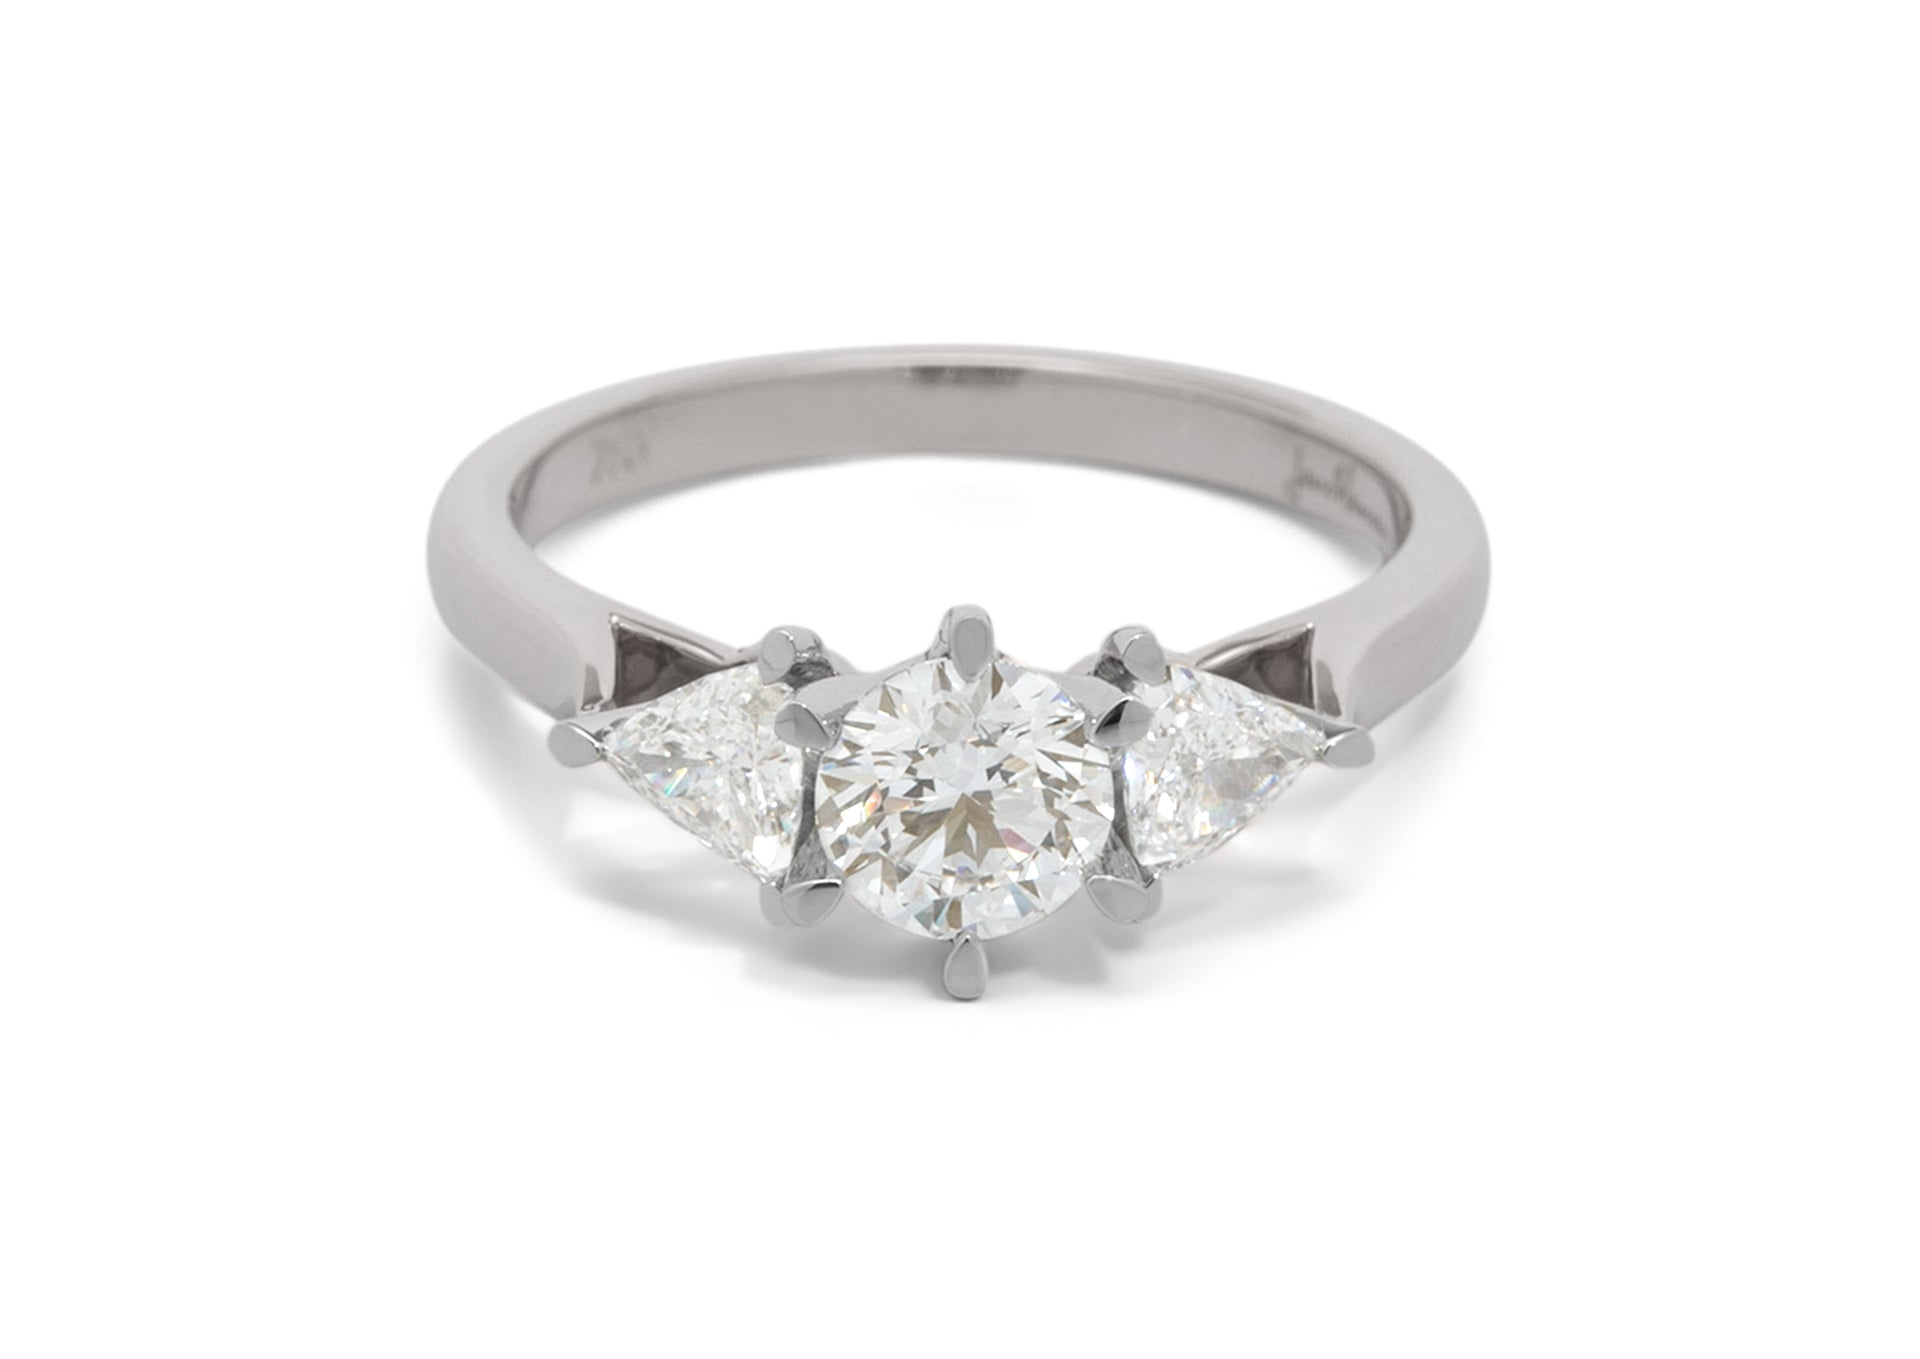 Custom Three Stone Diamond Engagement Ring, White Gold & Platinum